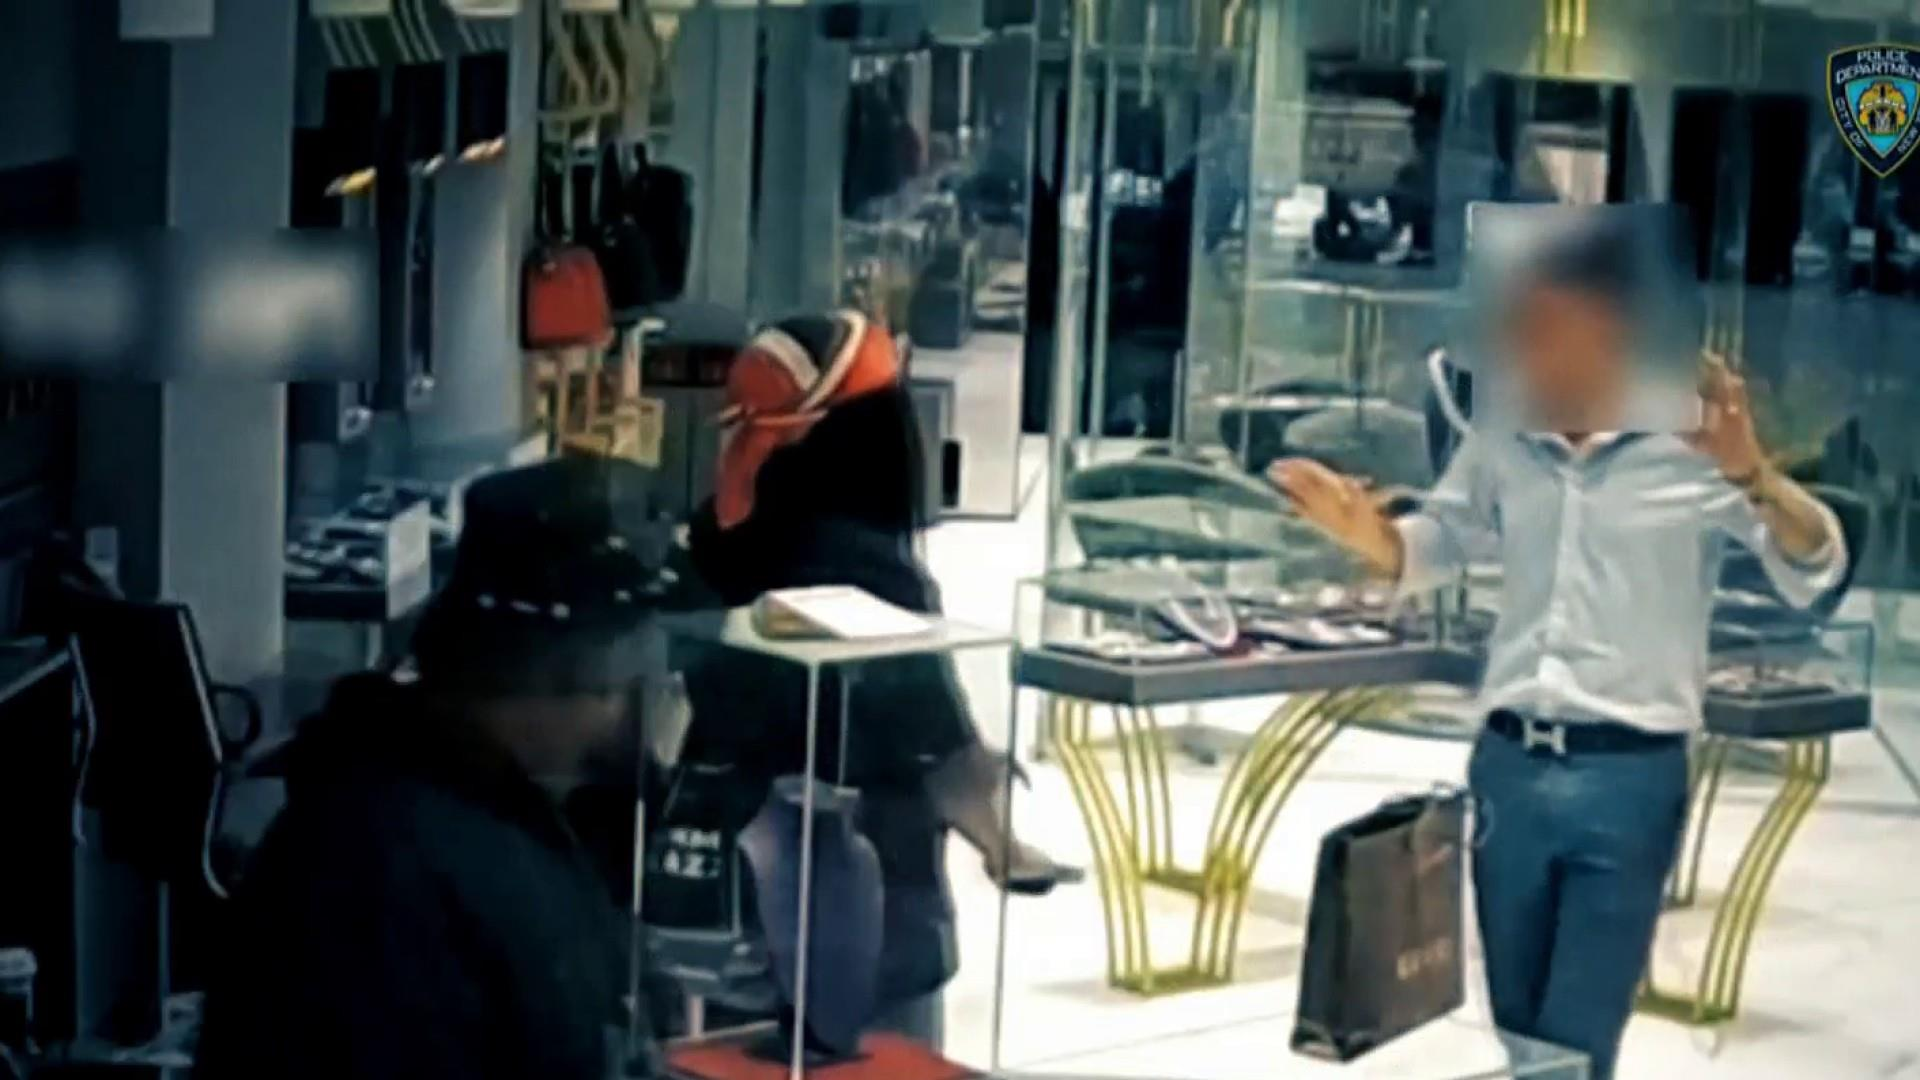 Video shows armed heist of estimated $4M in jewelry from Manhattan store